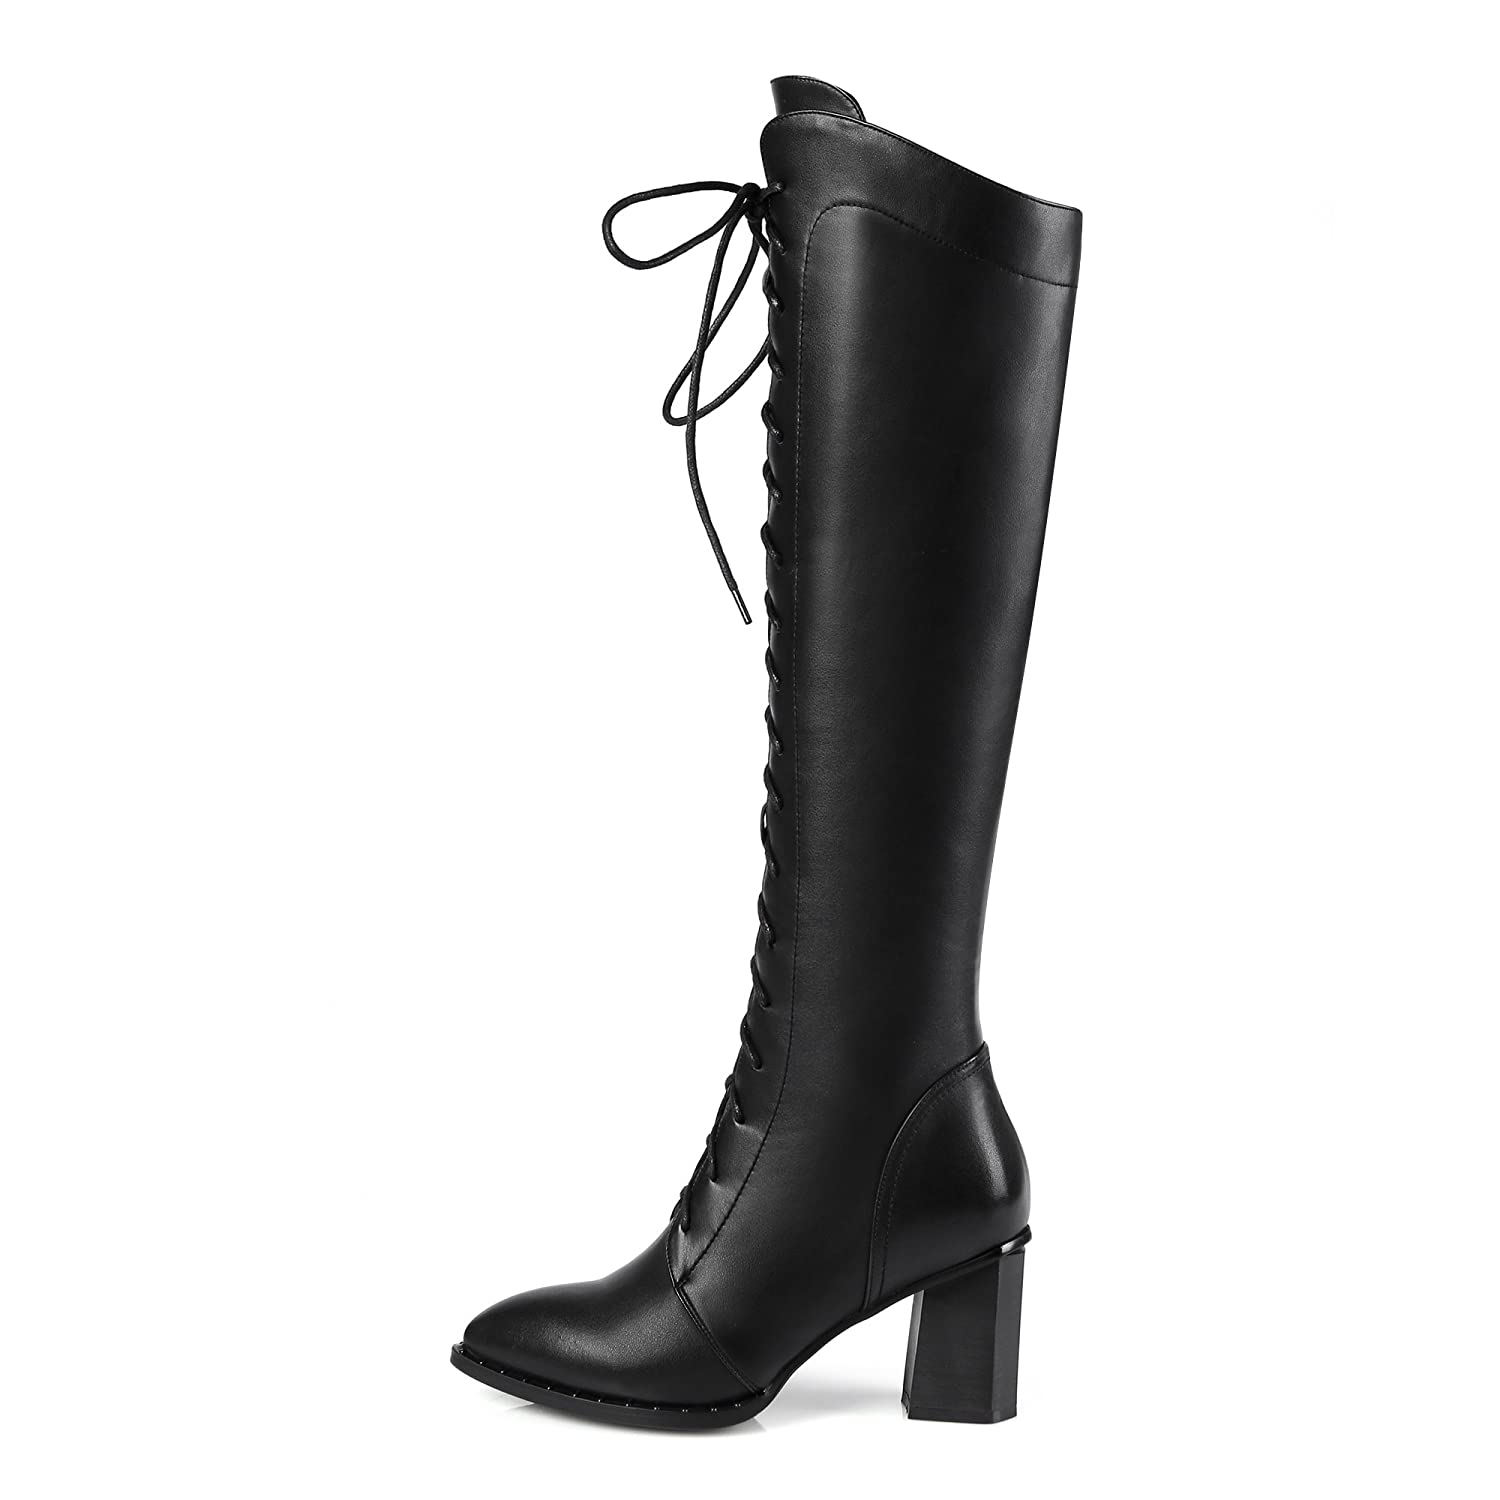 Ladies Zip Pointed toe Block heel Genuine leather Fashion Women boots  Fashion High heels Black Brown Knee-high Knight Boots: Amazon.co.uk: Shoes  & Bags